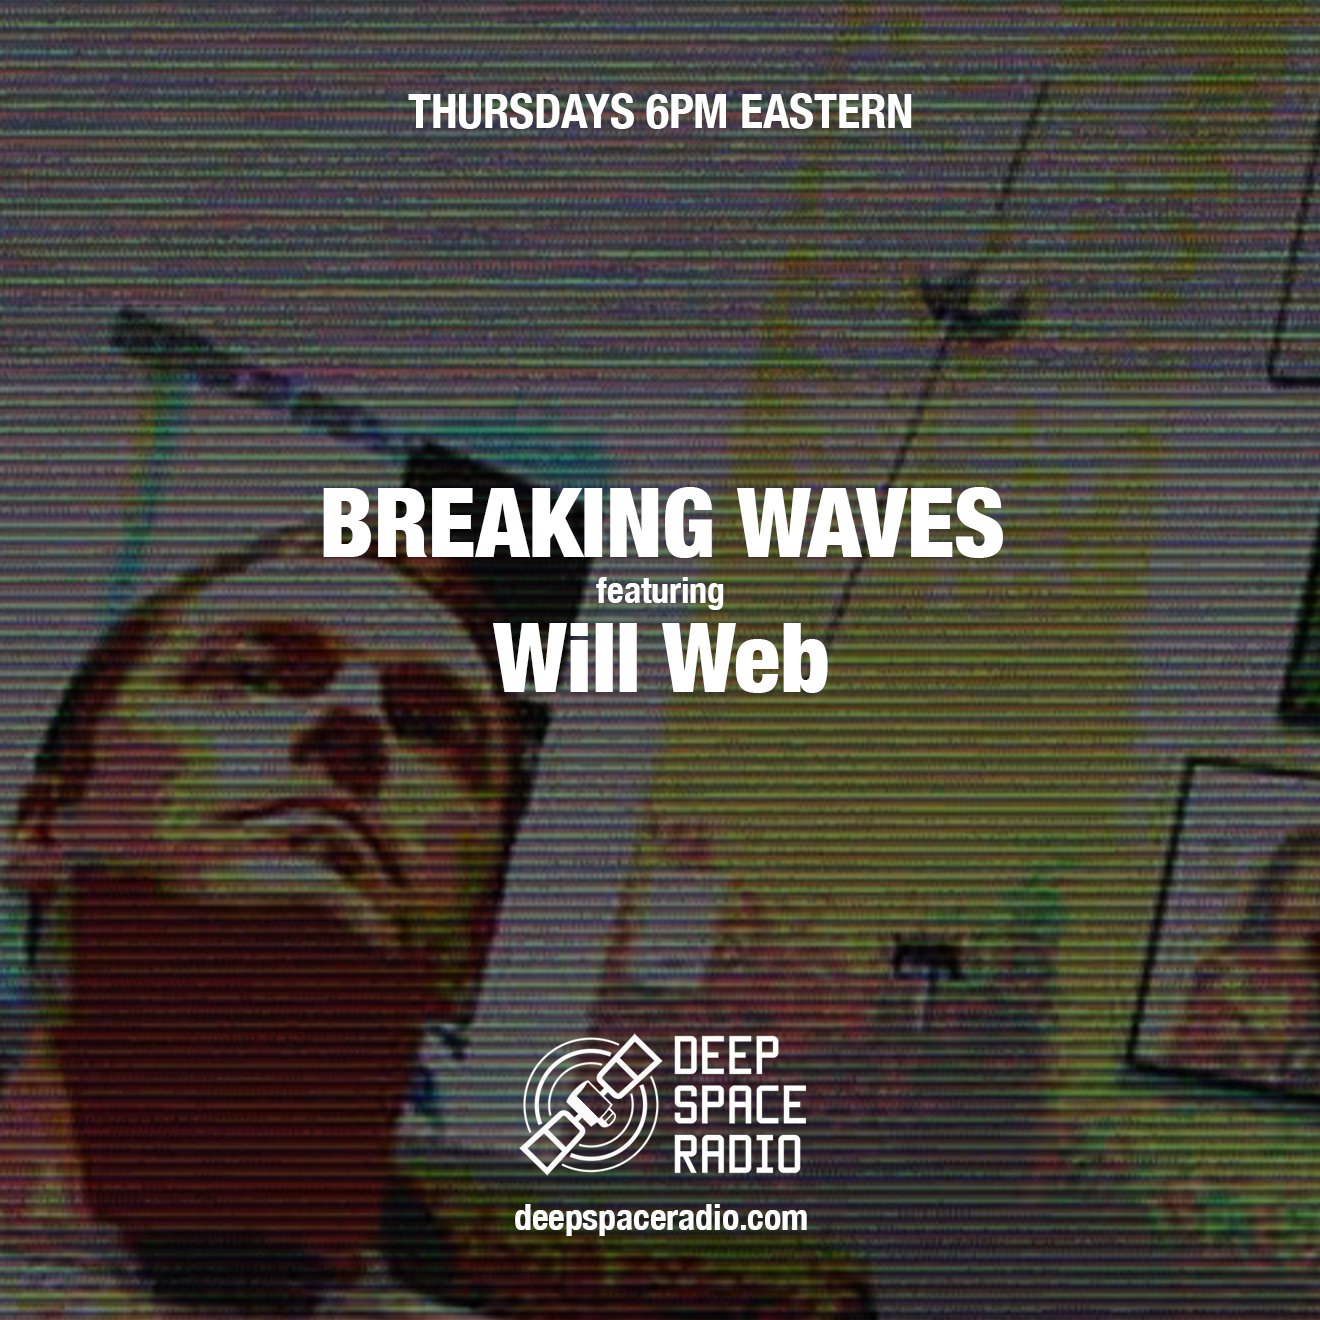 deepspaceradio-breakingwaves-willweb